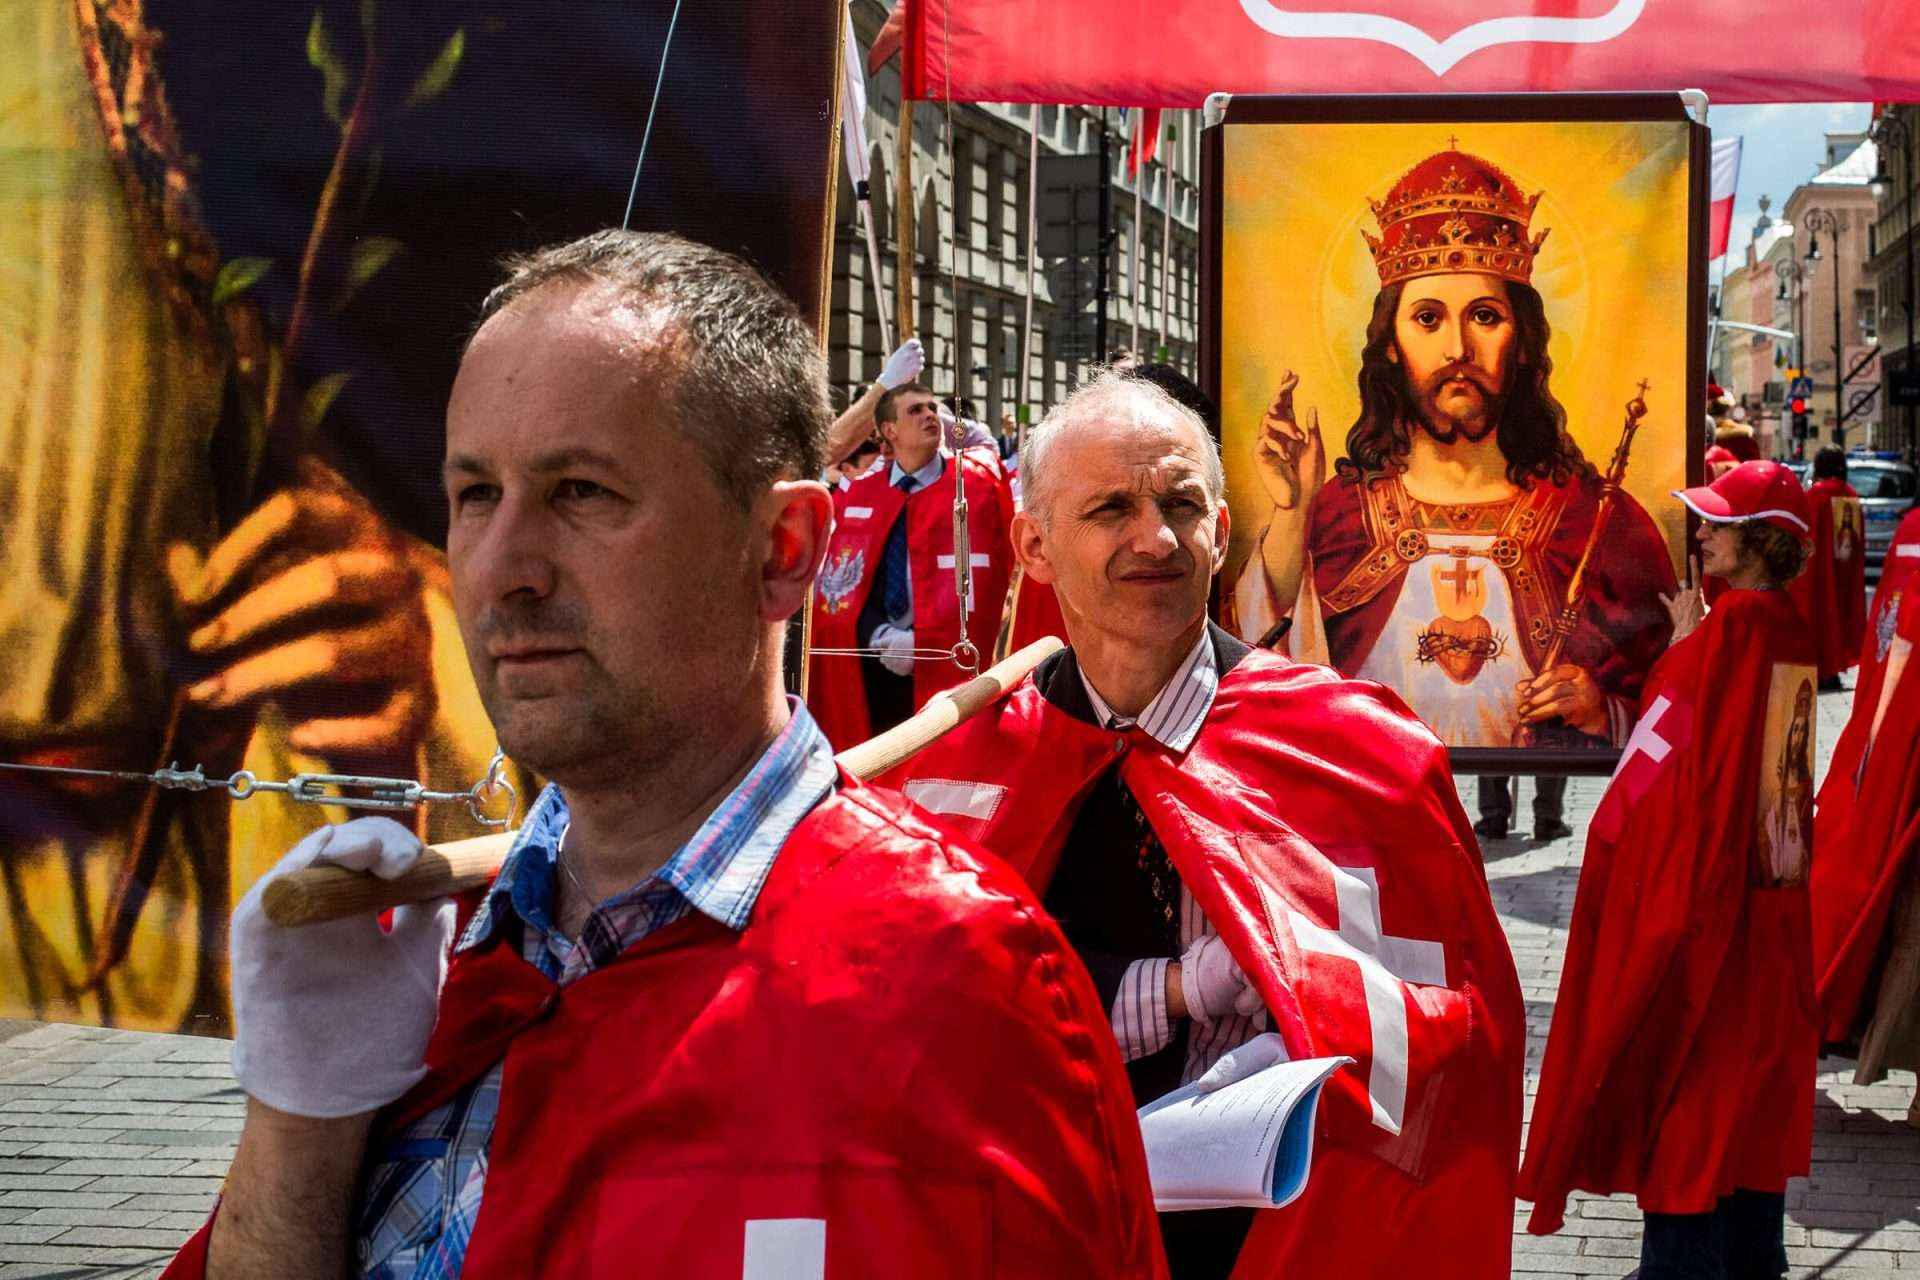 Did You Know? Jesus Is Officially the King of Poland